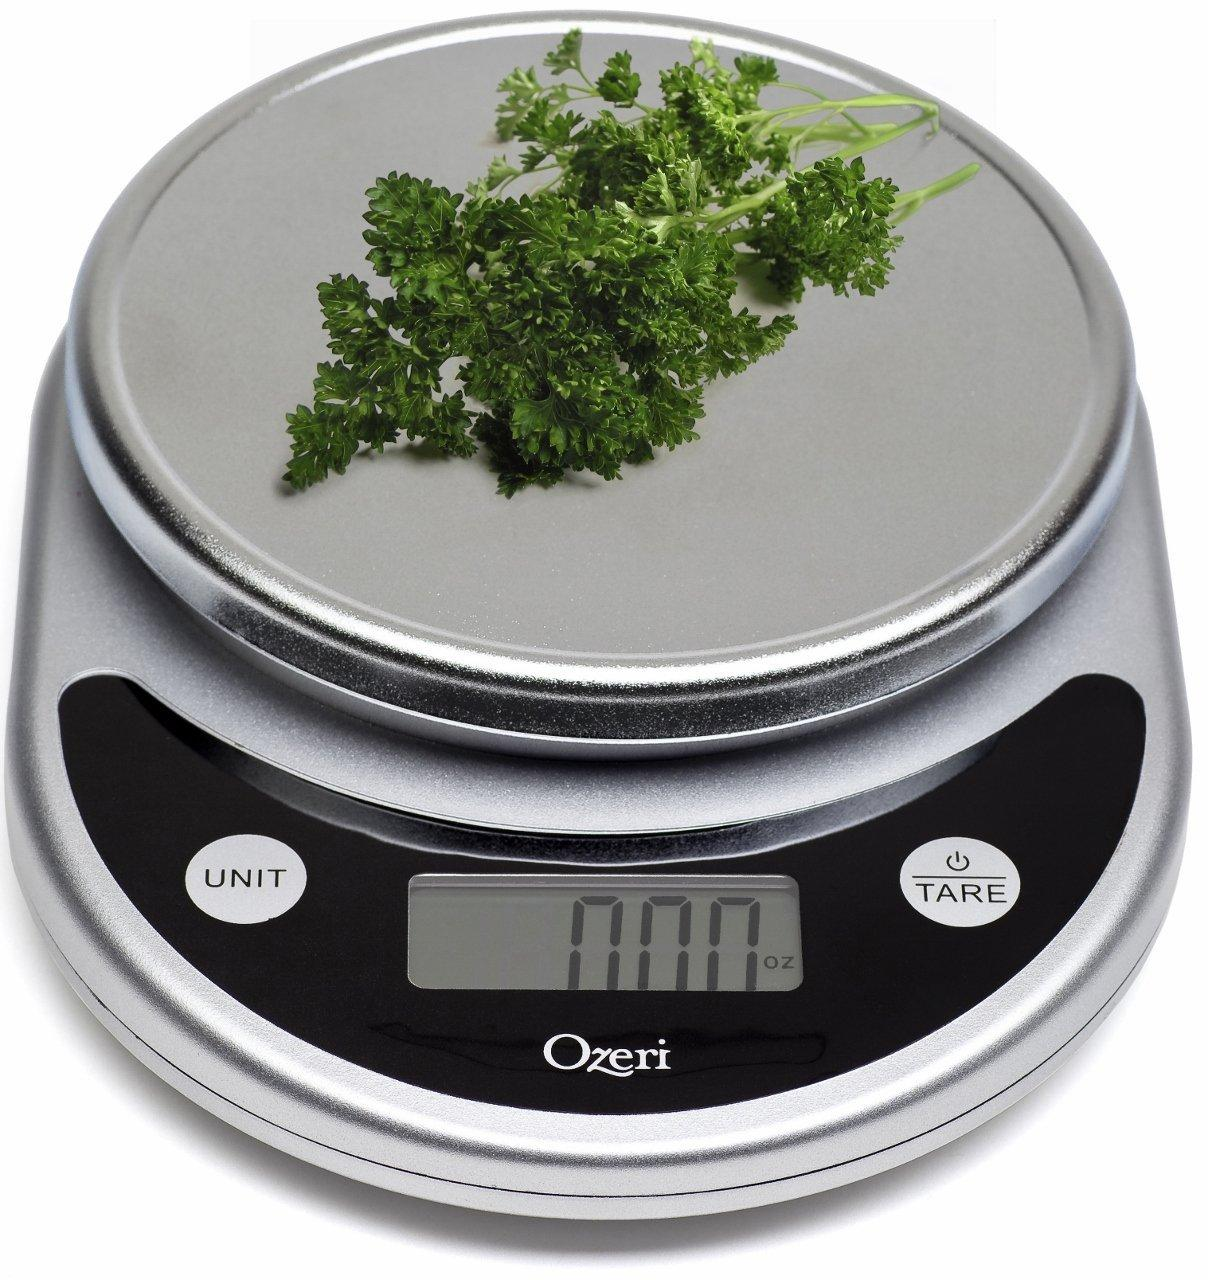 $12.14 Ozeri Pronto Digital Multifunction Kitchen and Food Scale